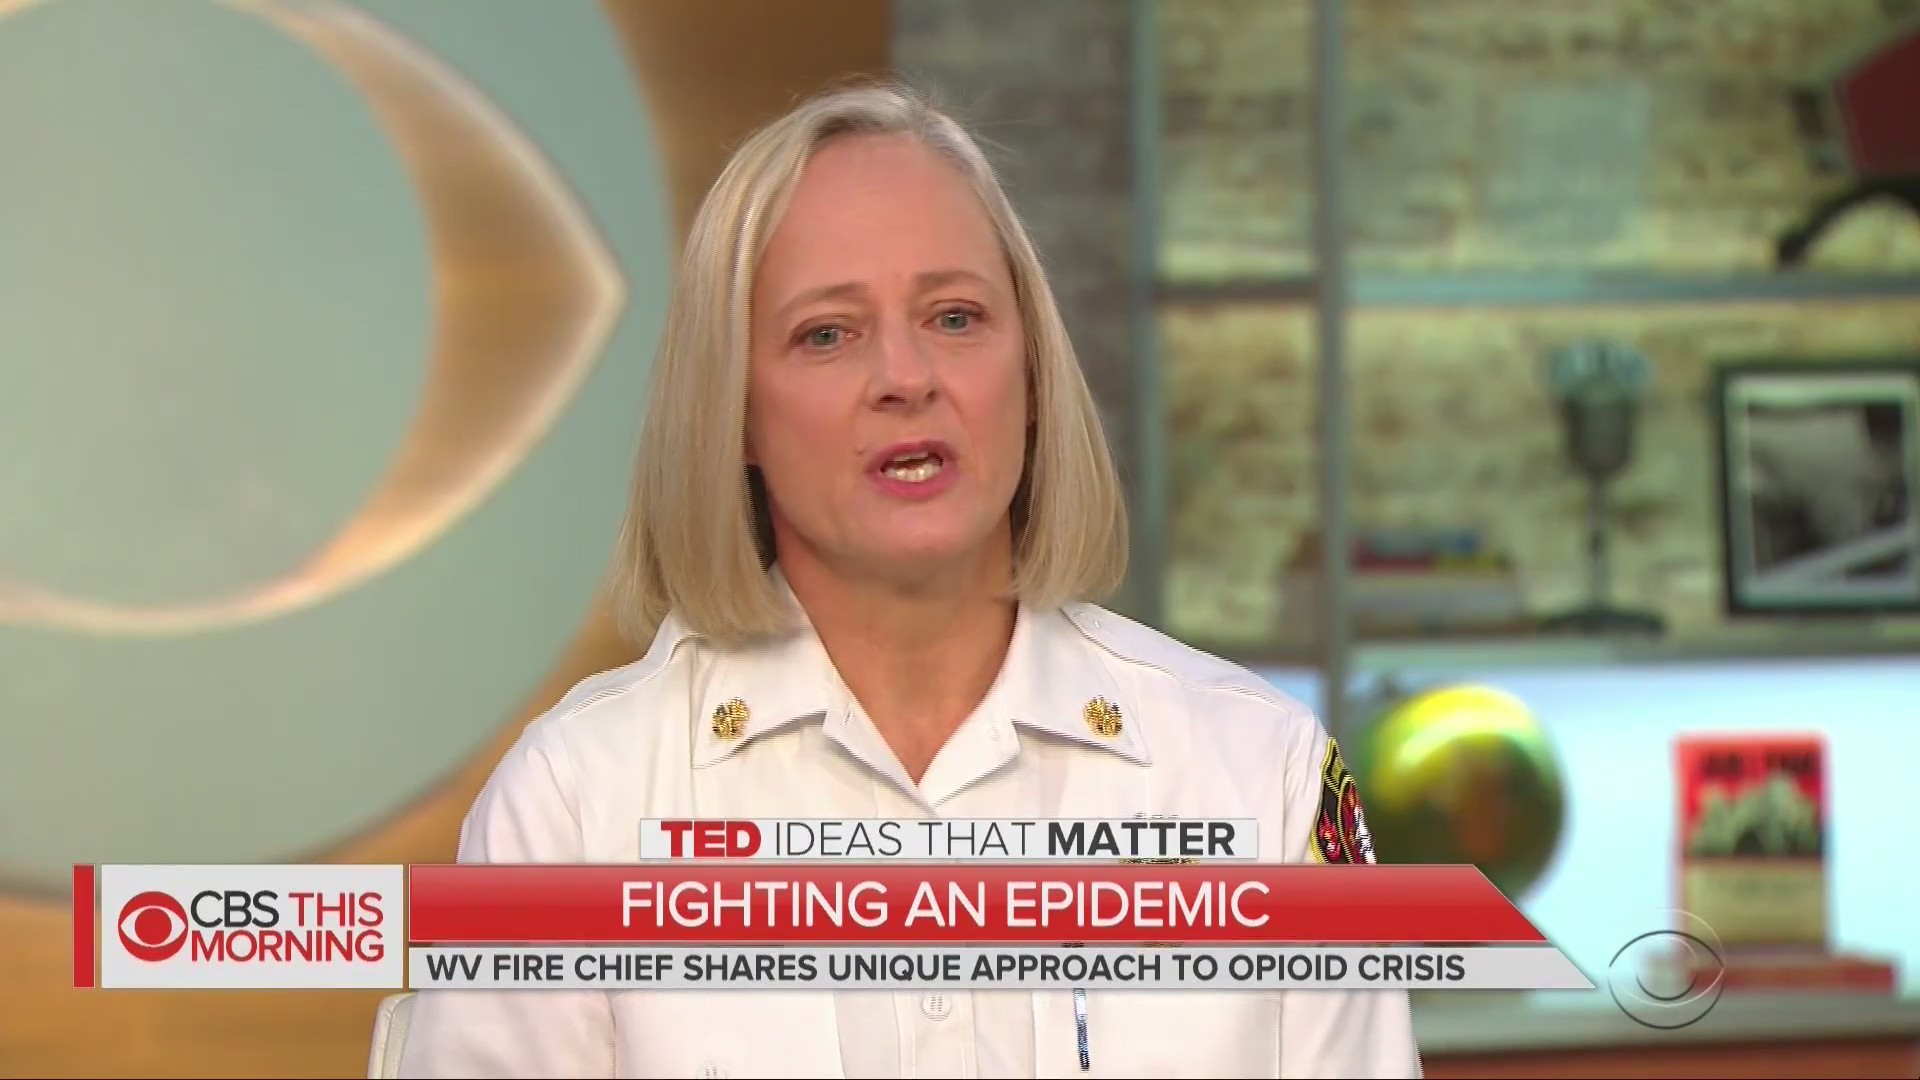 Huntington Fire Chief takes message nationwide with TED Talk, CBS This Morning Appearance